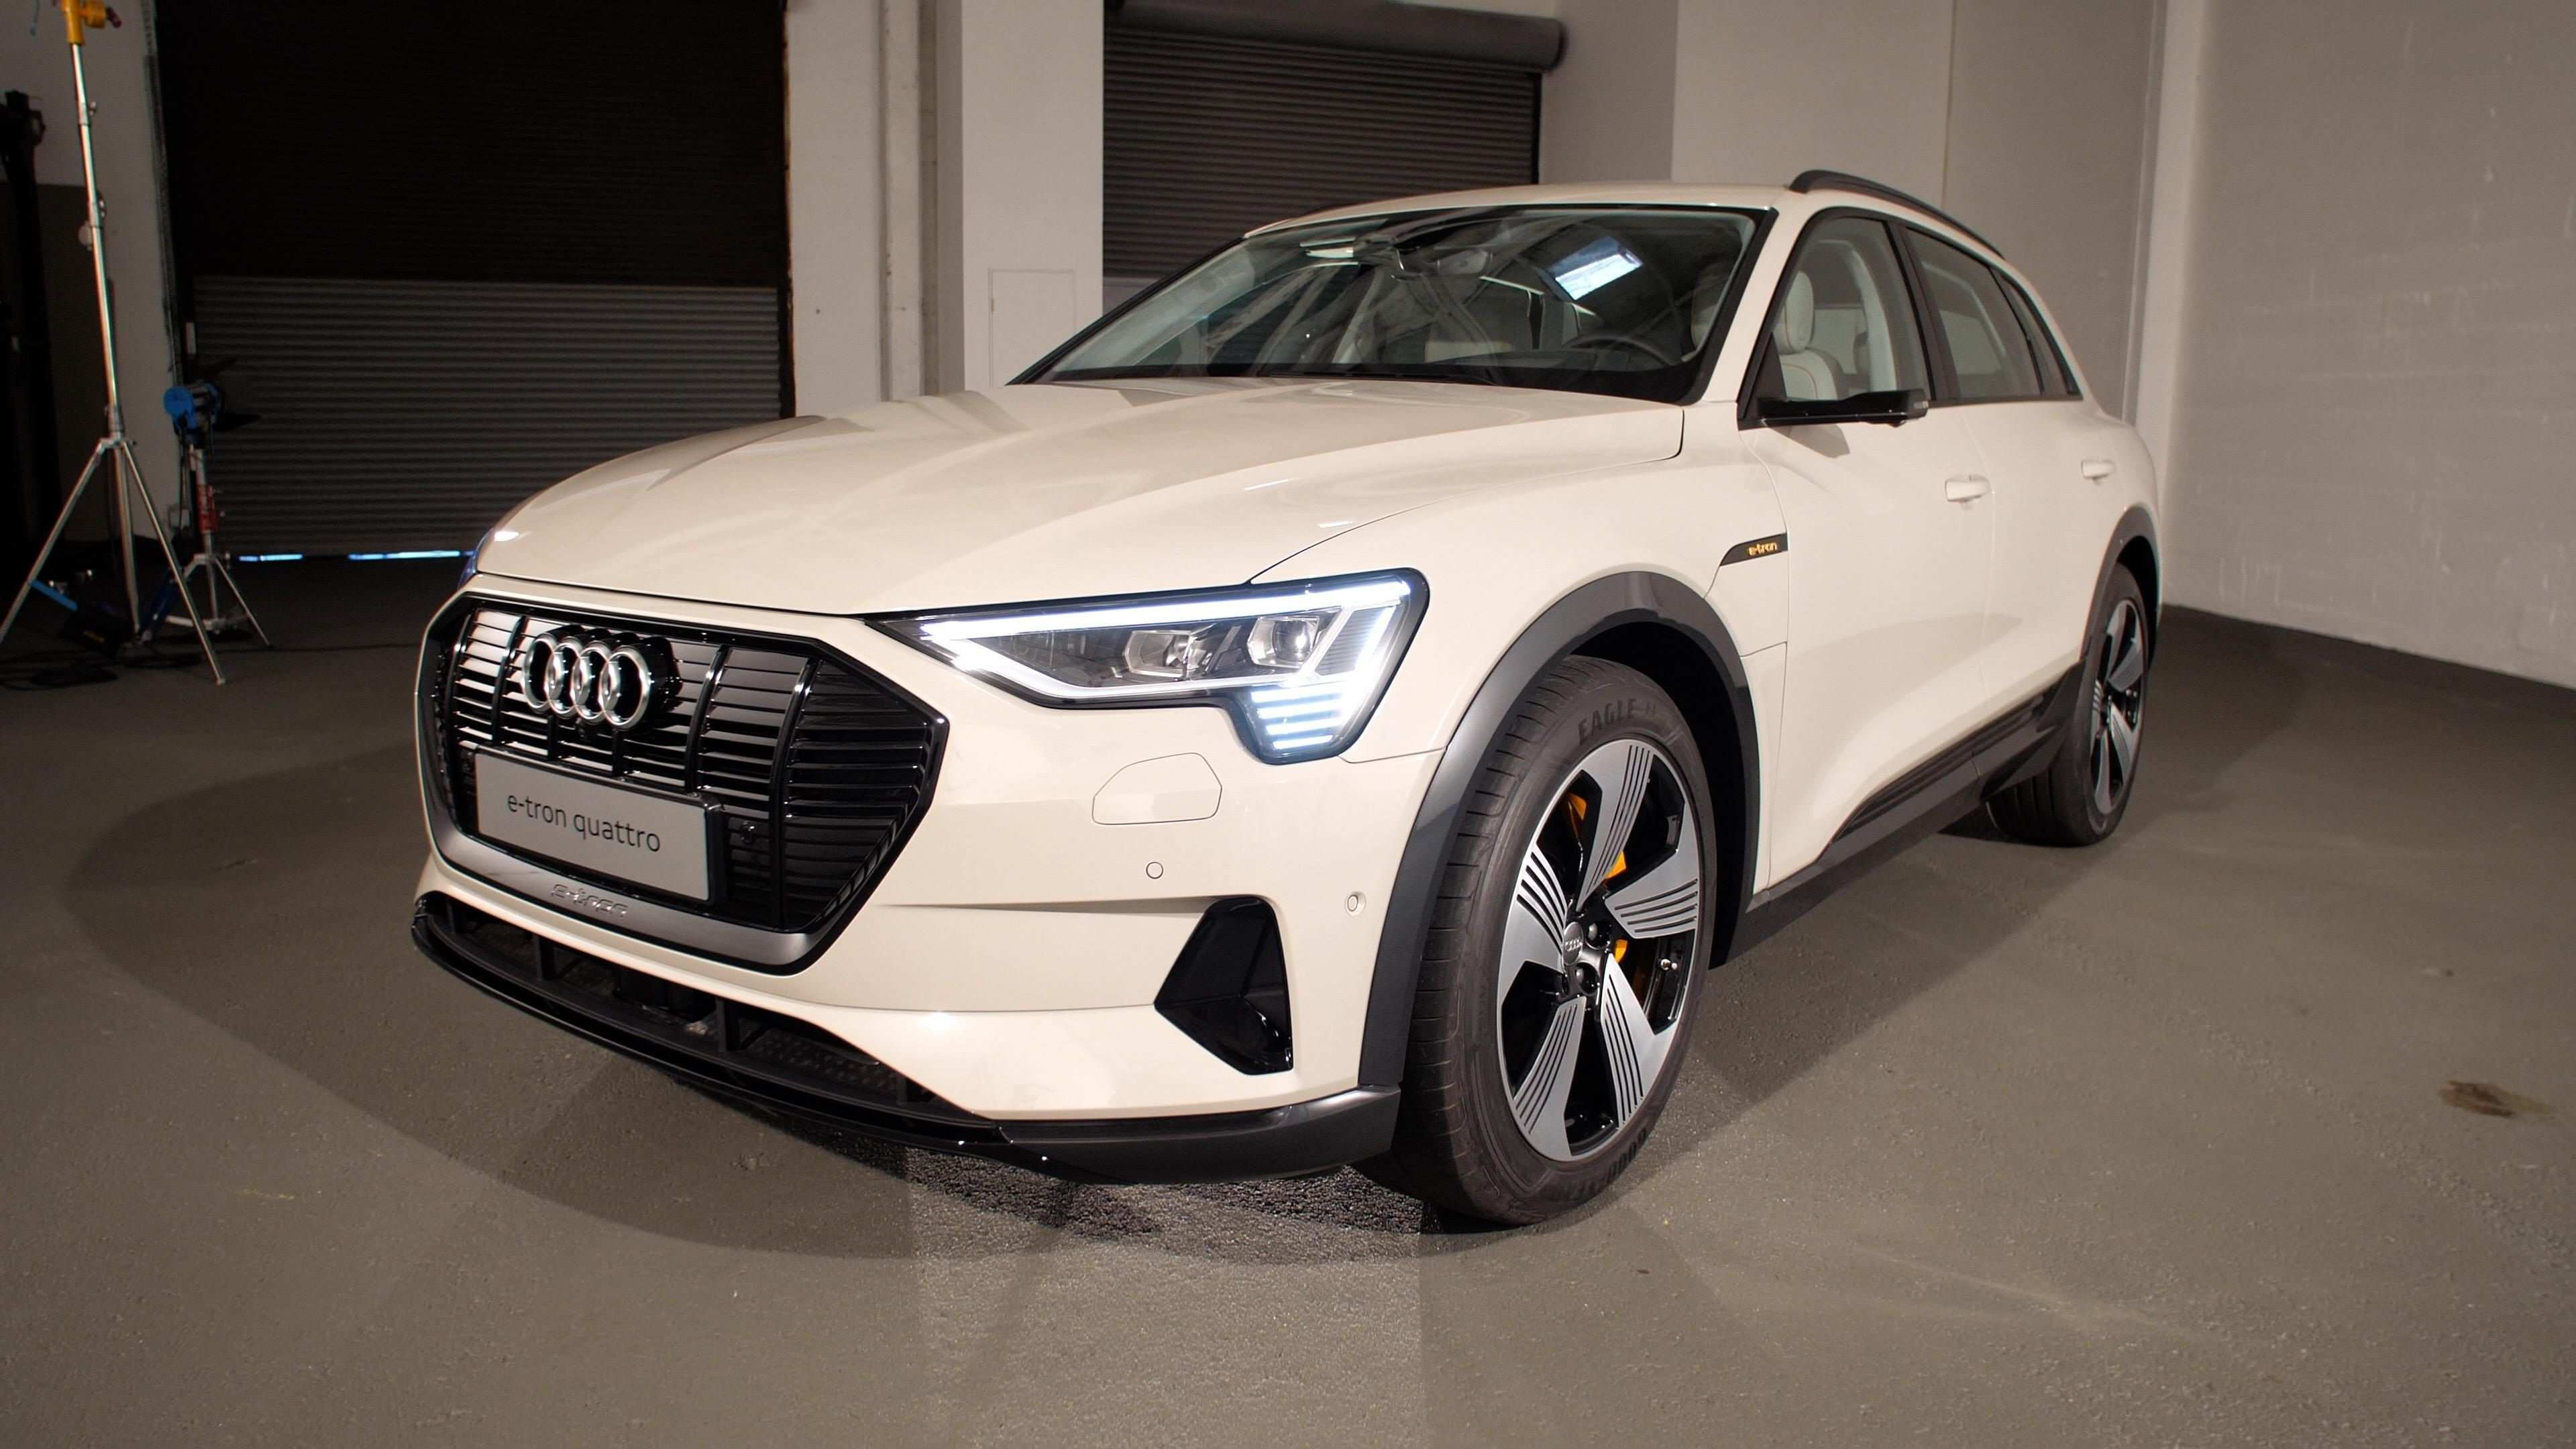 96 Great The Audi 2019 Changes Spy Shoot Reviews by The Audi 2019 Changes Spy Shoot